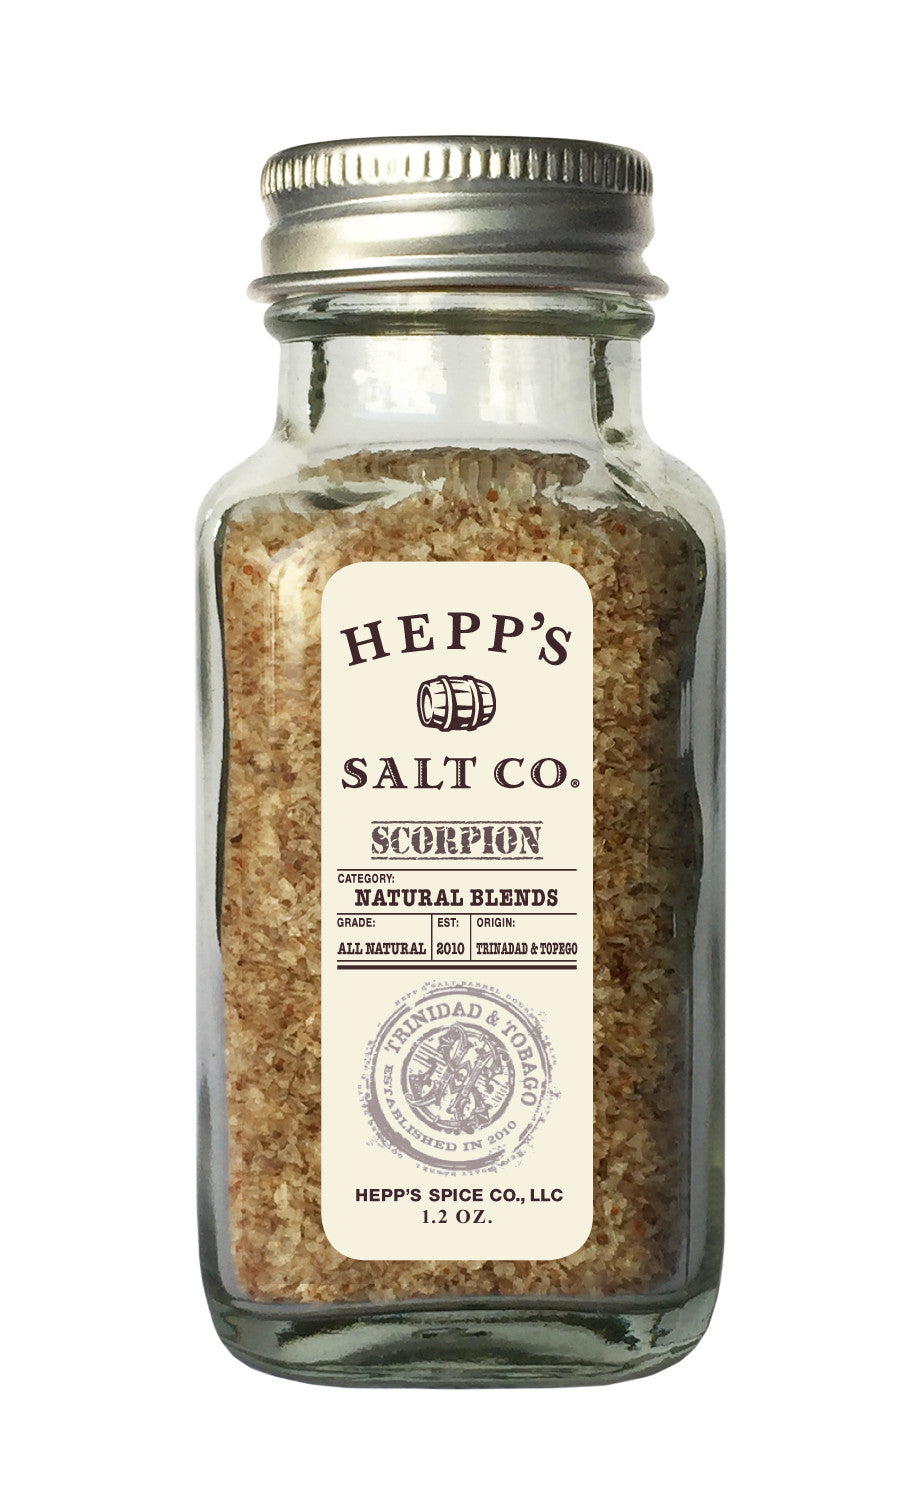 Scorpion Sea Salt - HEPPS SALT CO.